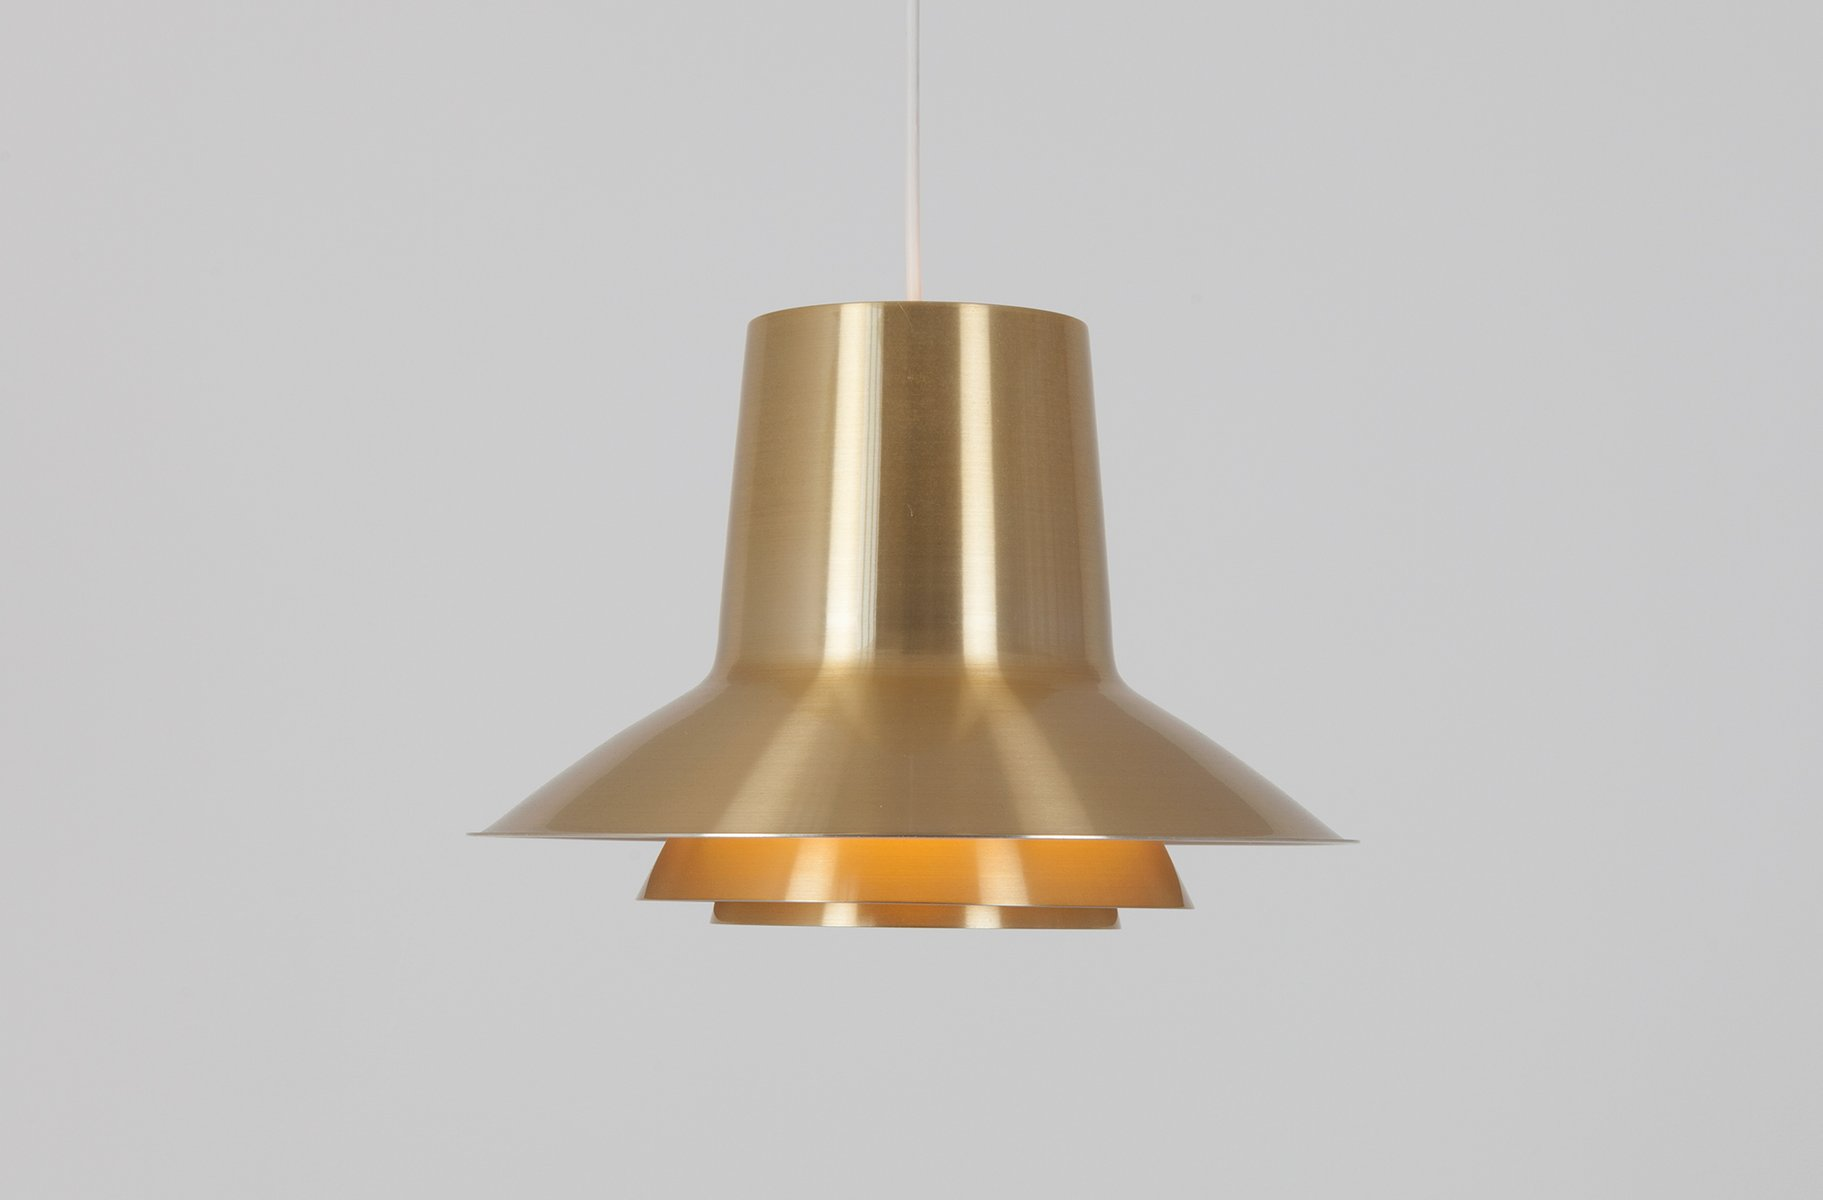 sale at pamono solar nordisk svend pendant middelboe by for vintage